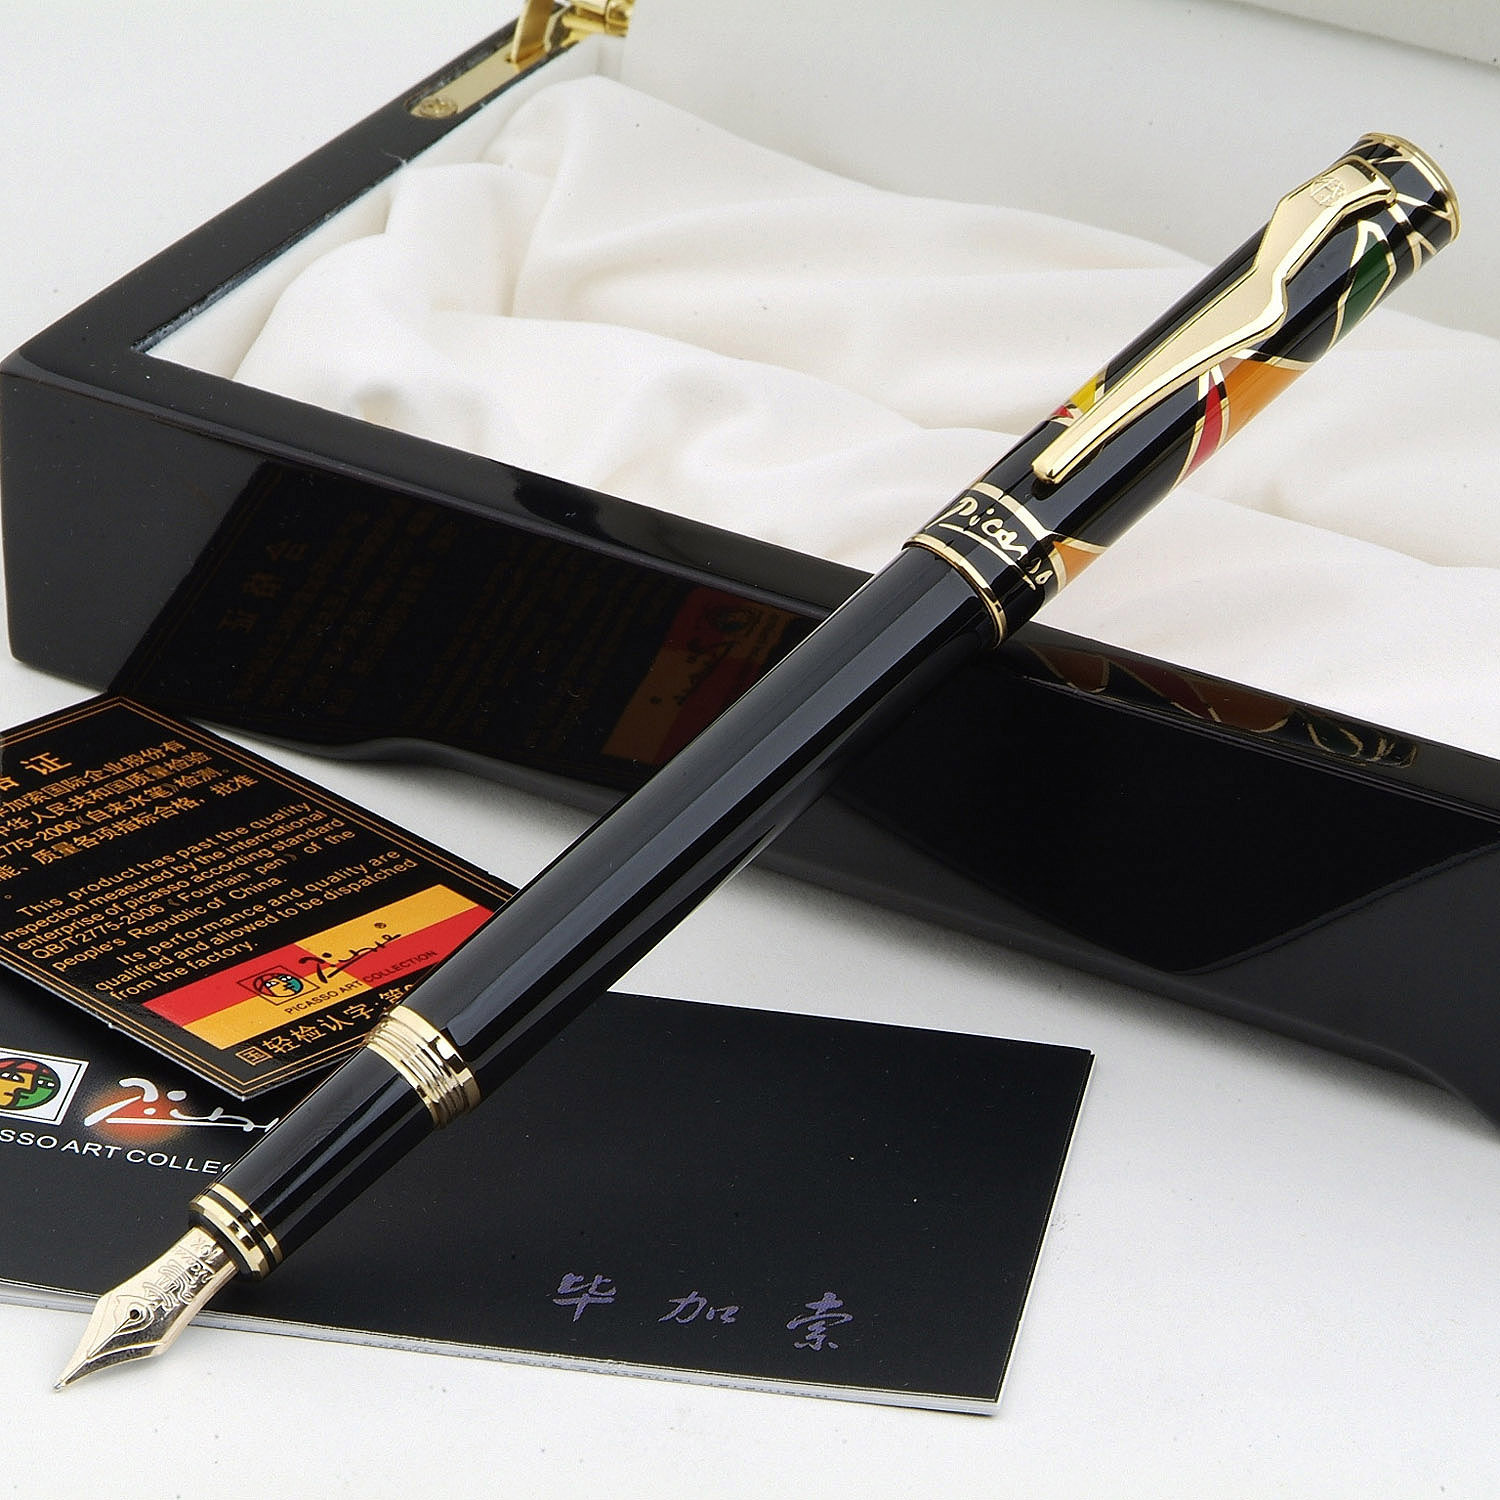 Picasso Pimio 80 Fashion High Quality 10K Fountain Pen with Gem on The Top with Original Wooden Gift Box Ink Pens Free Shipping cardiofax gem ekg 9022 k